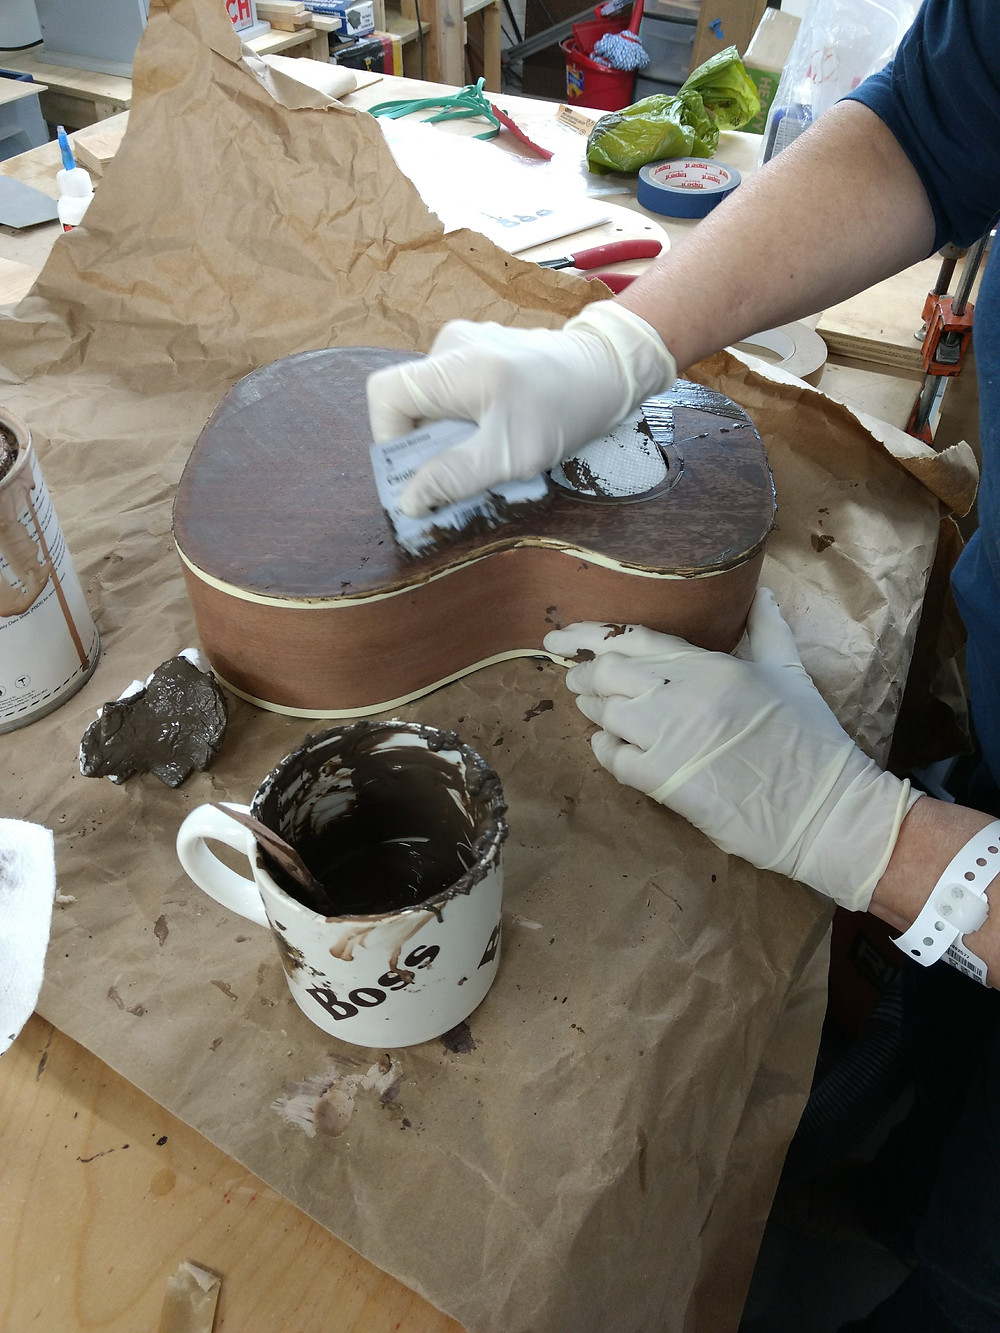 Grain filling the body of the uke.